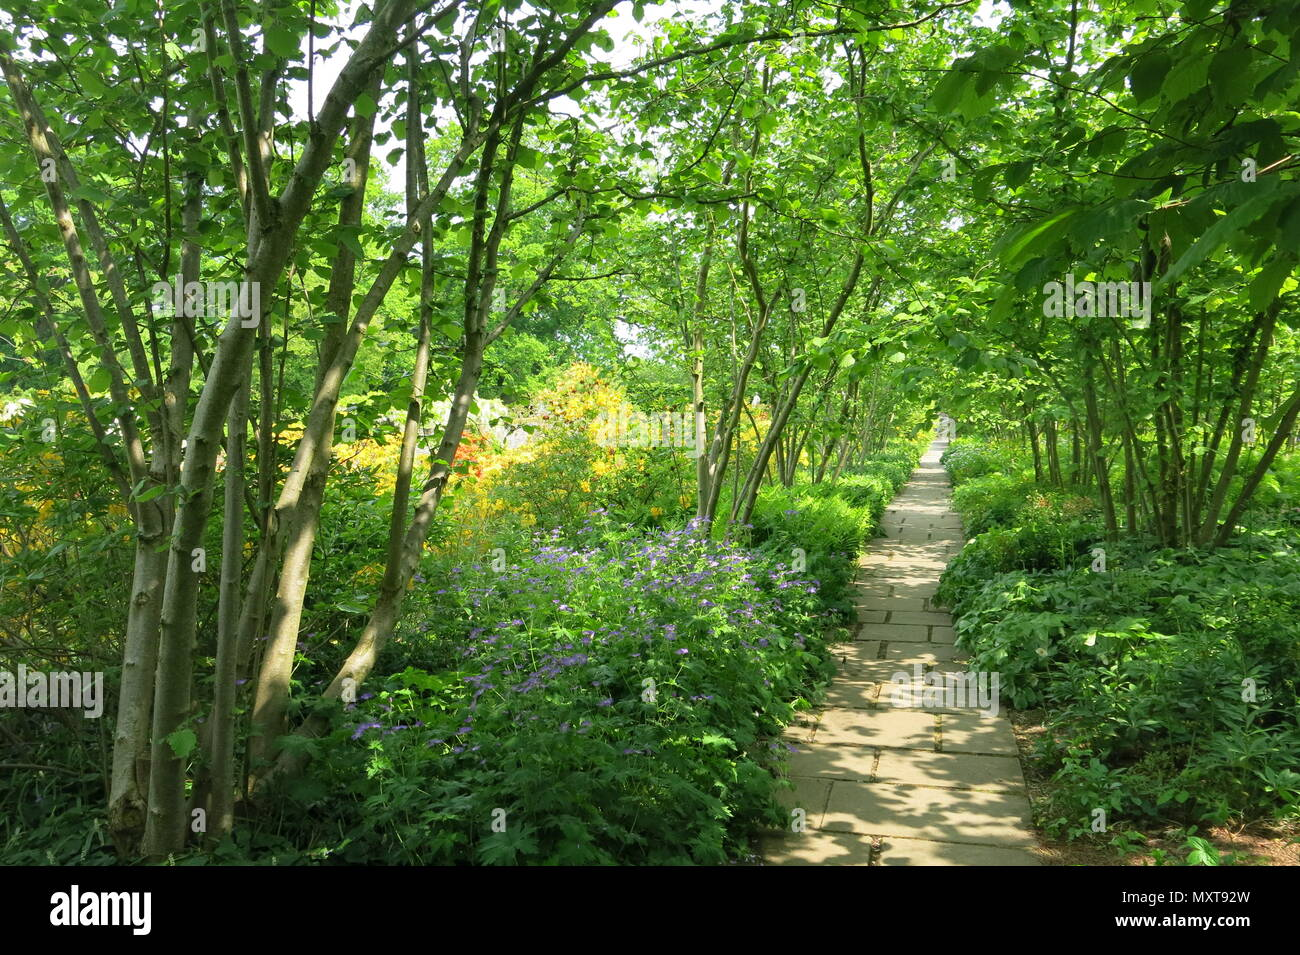 A shady pathway leads you through one of the garden rooms at Sissinghurst Castle Gardens, Vita Sackville-West's garden in Kent - Stock Image